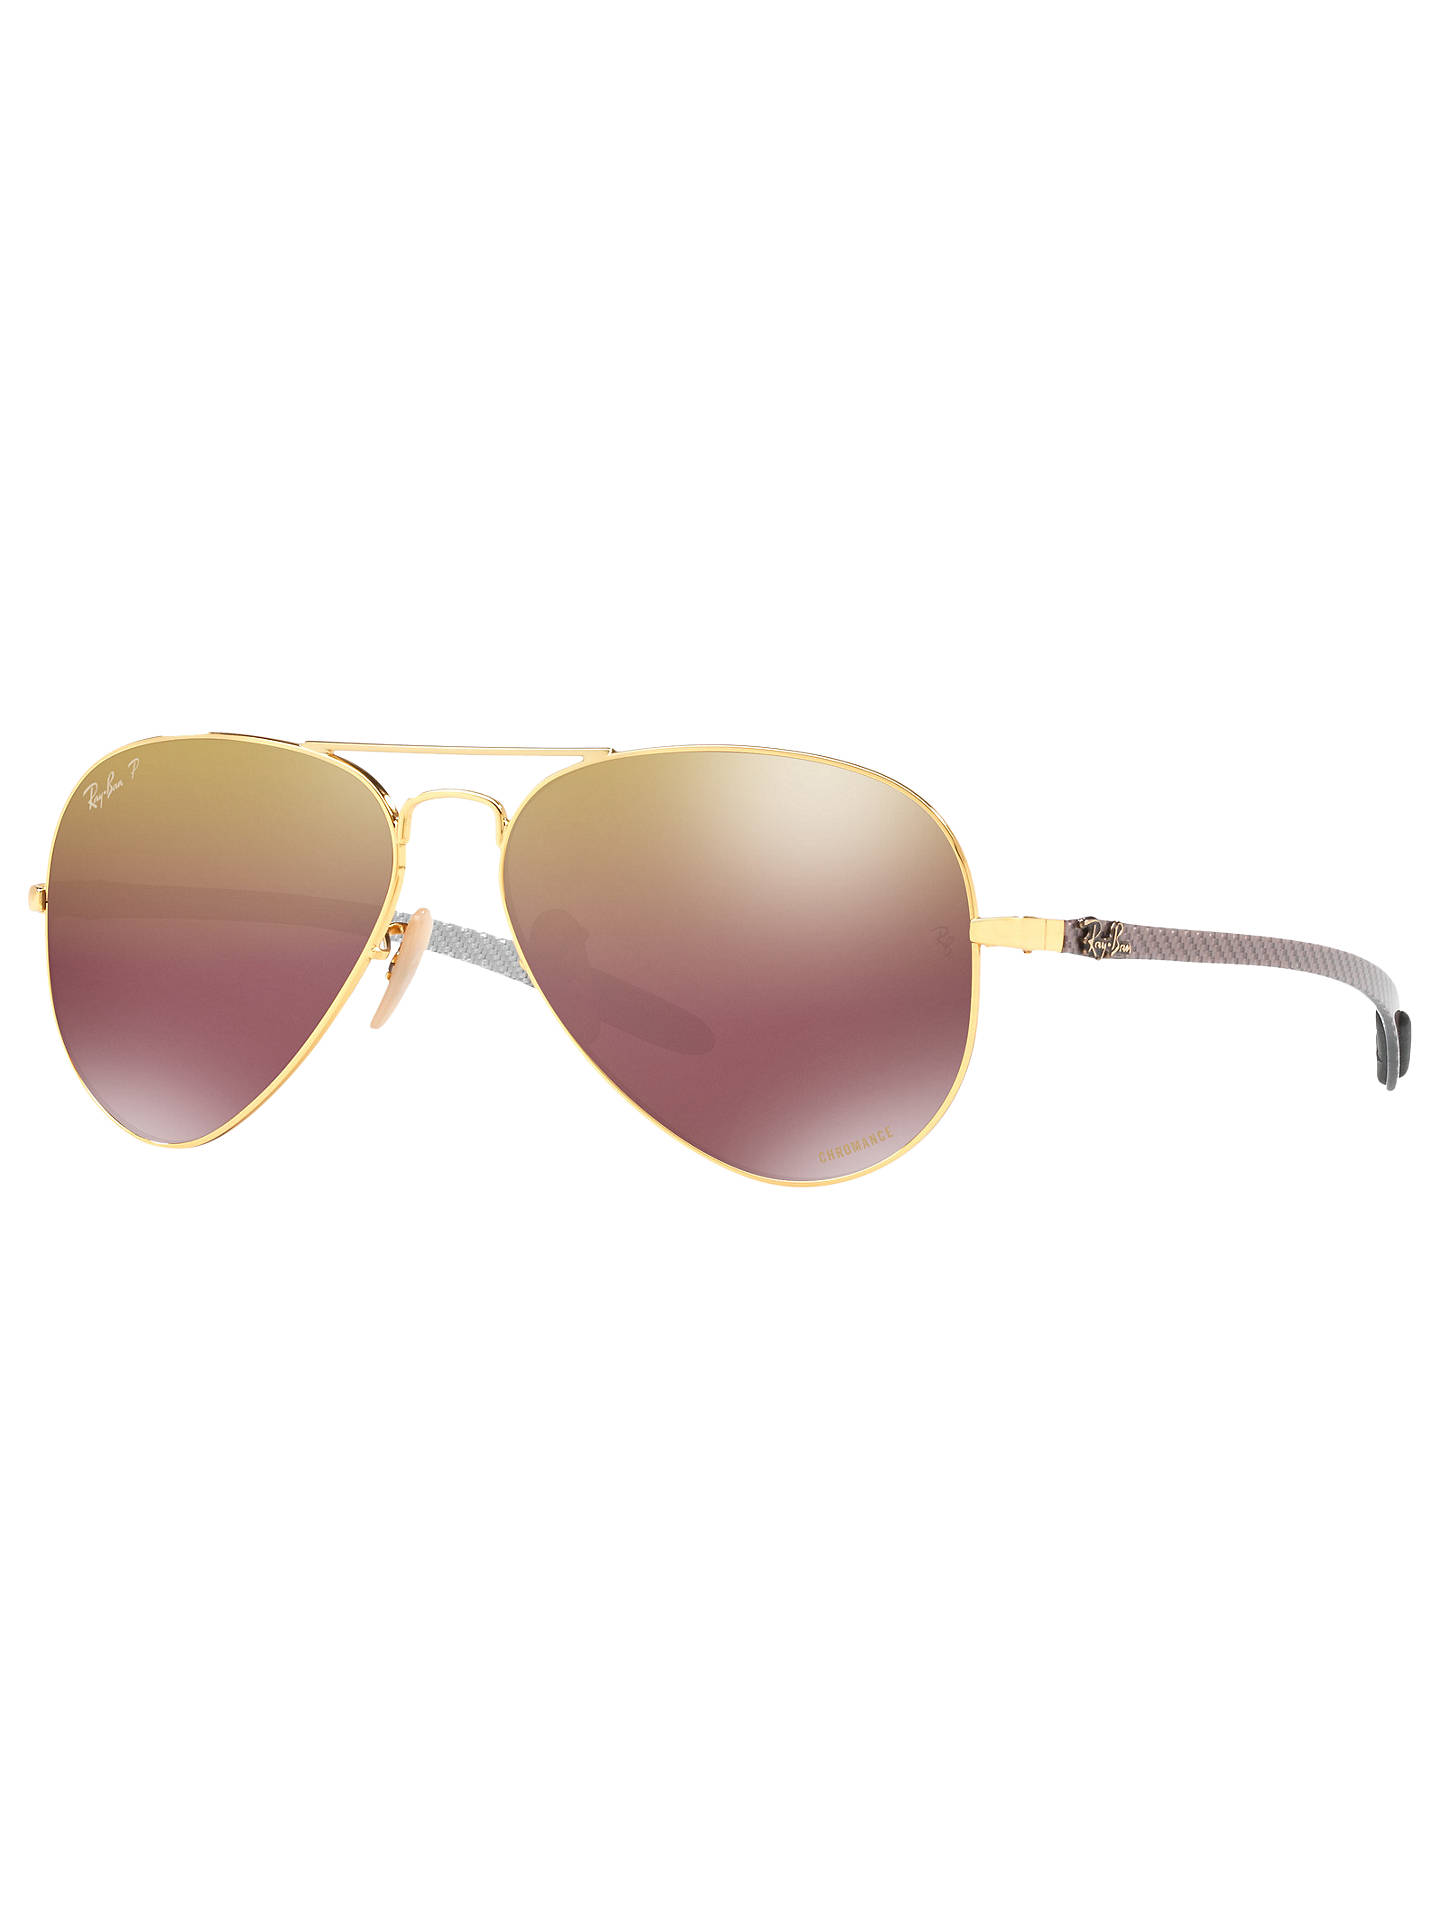 BuyRay-Ban RB8317CH Chromance Polarised Aviator Sunglasses, Gold/Mirror Purple Online at johnlewis.com